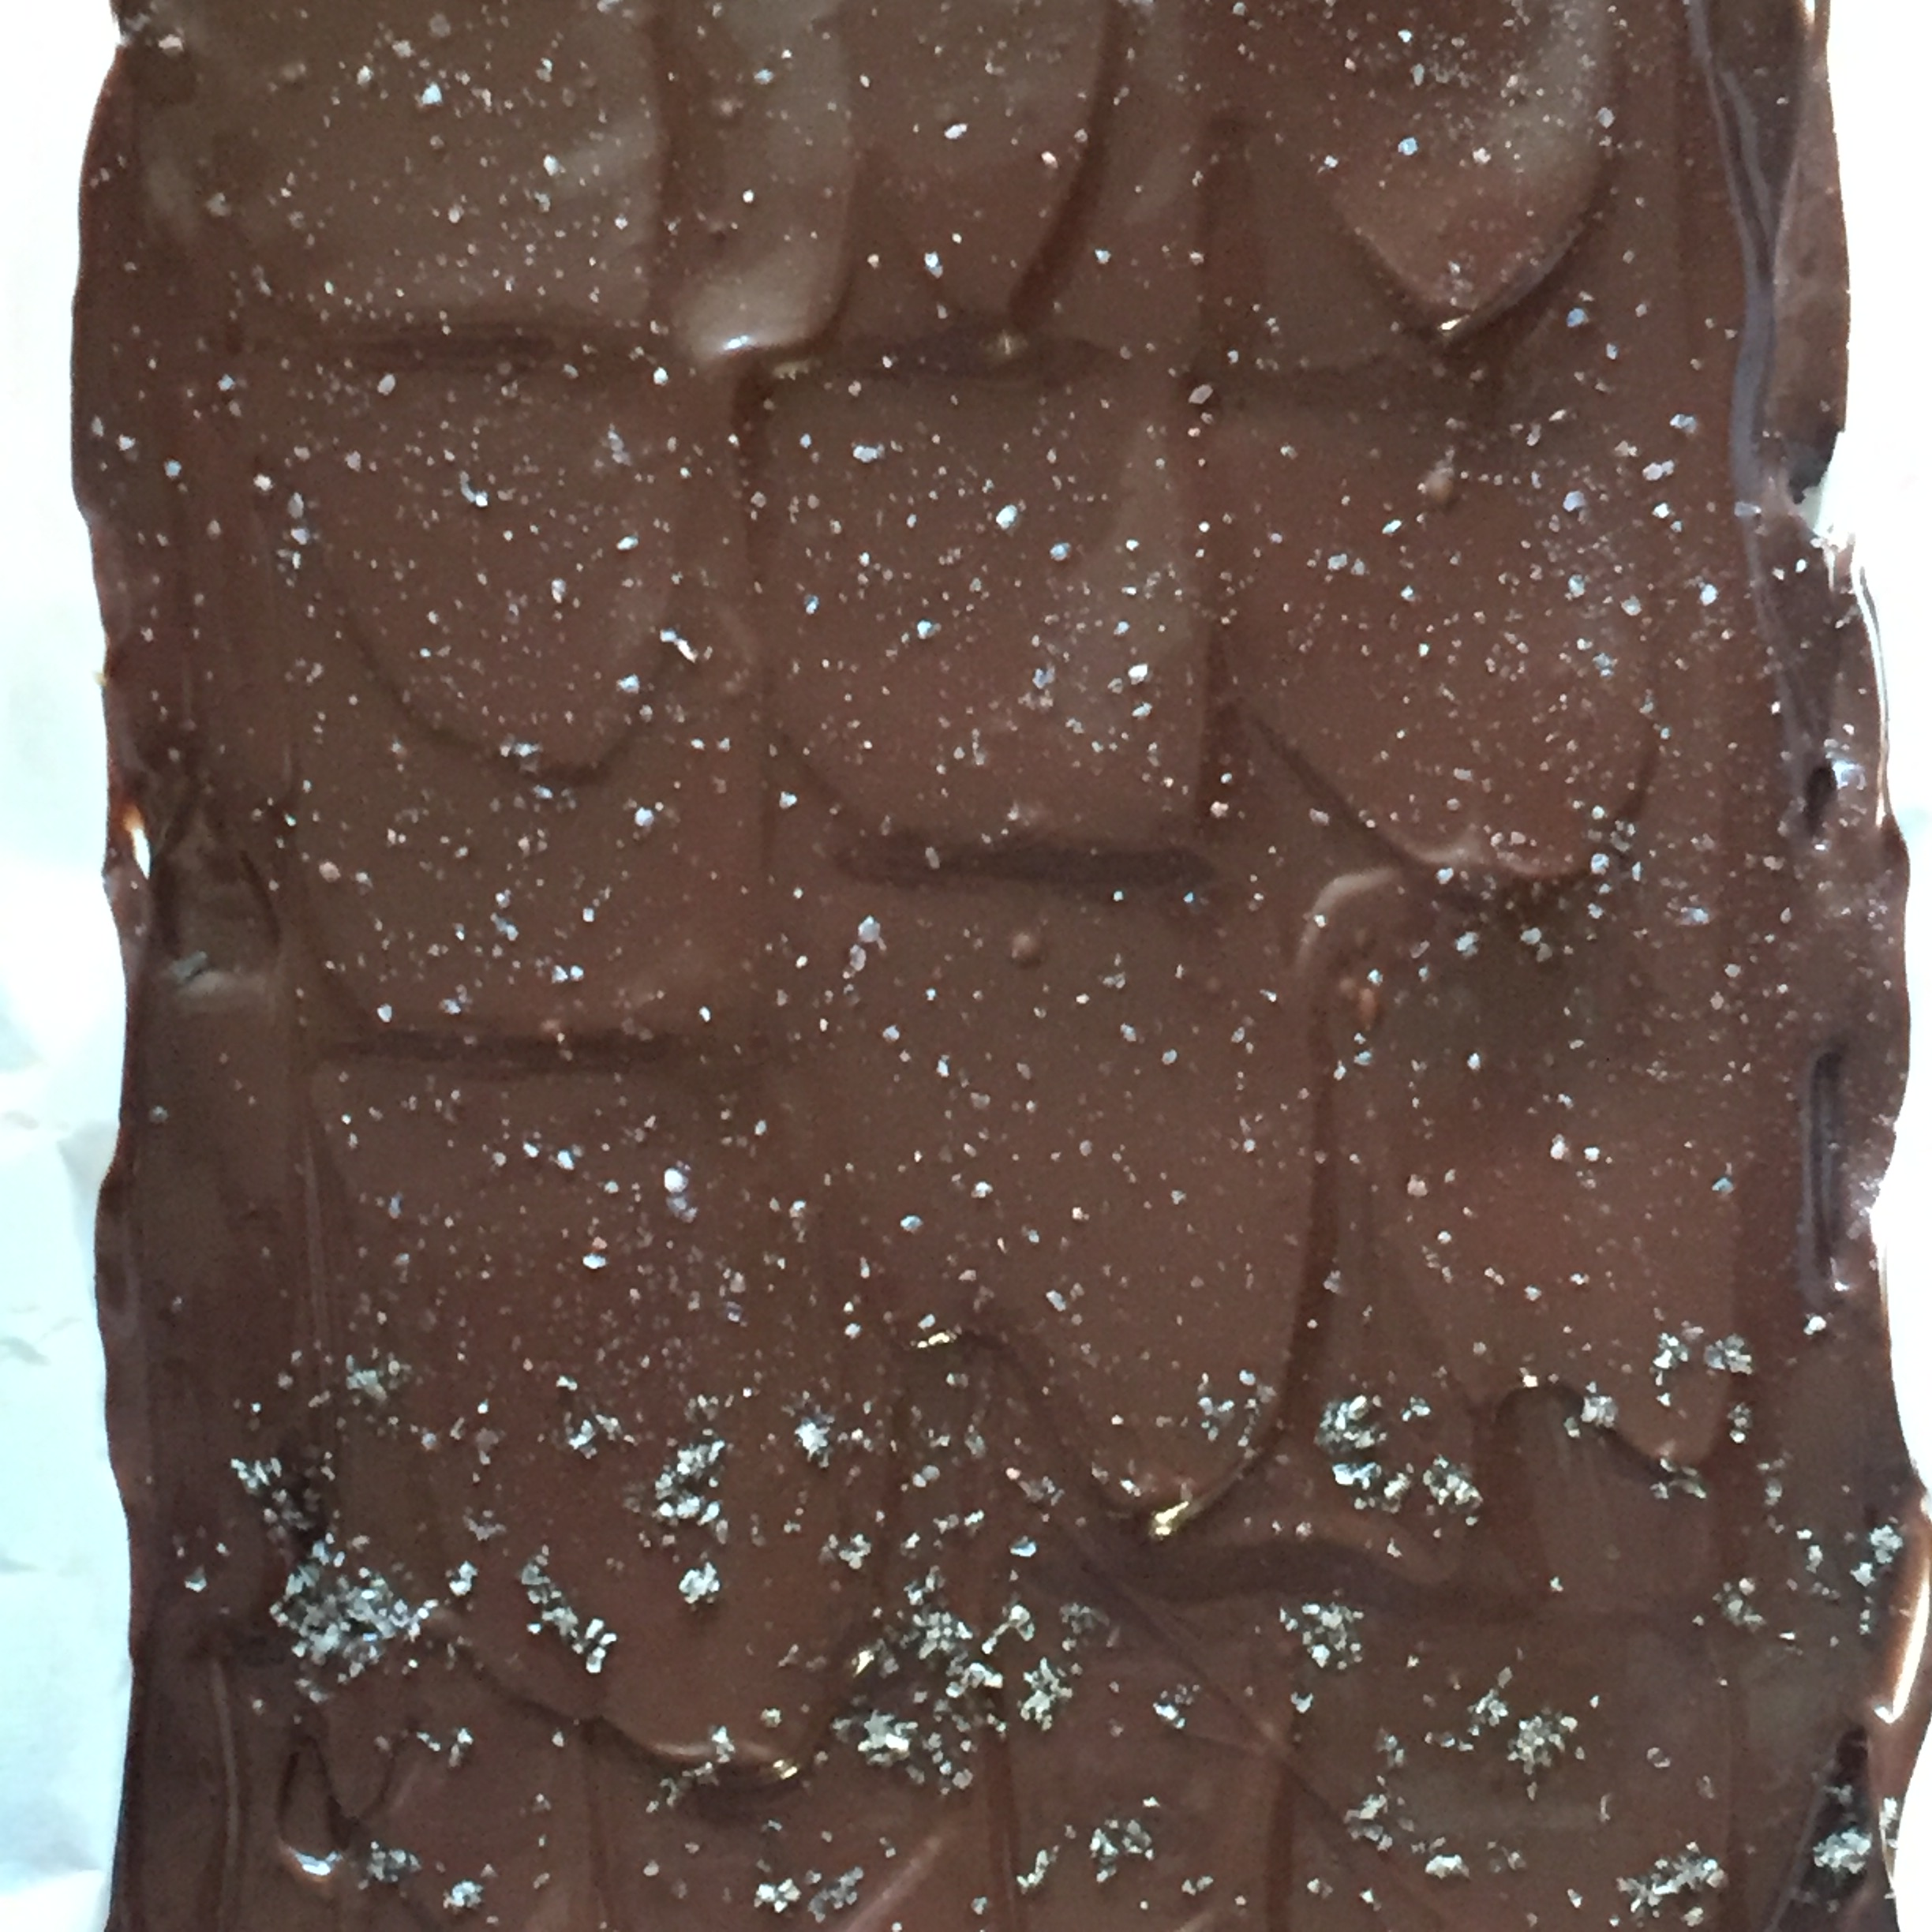 After the chocolate has set sprinkle with sea salt